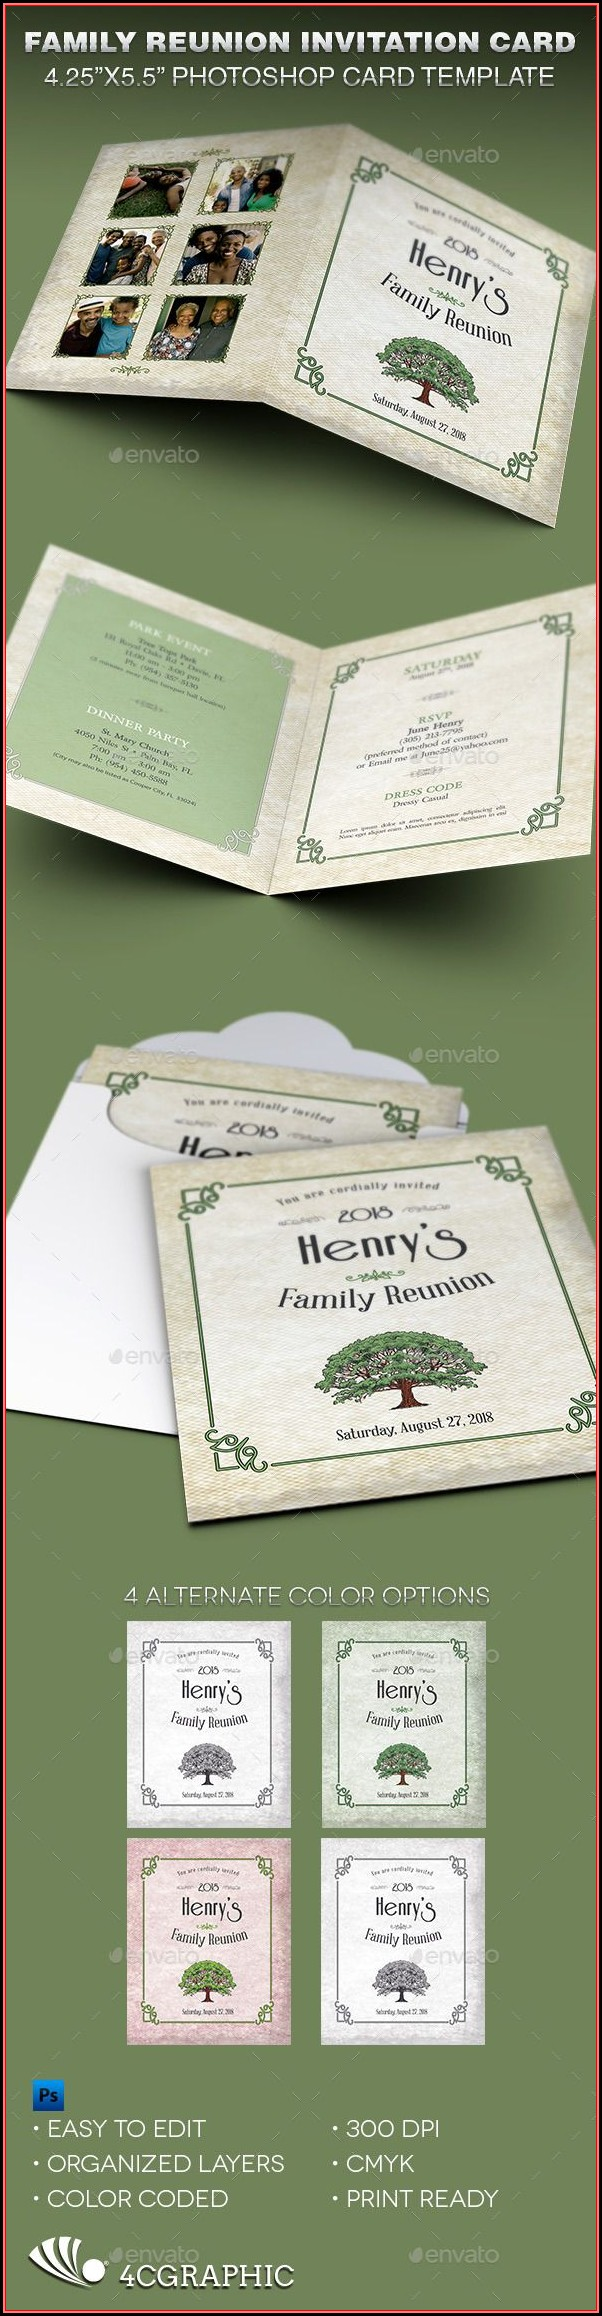 Family Reunion Invitation Card Templates